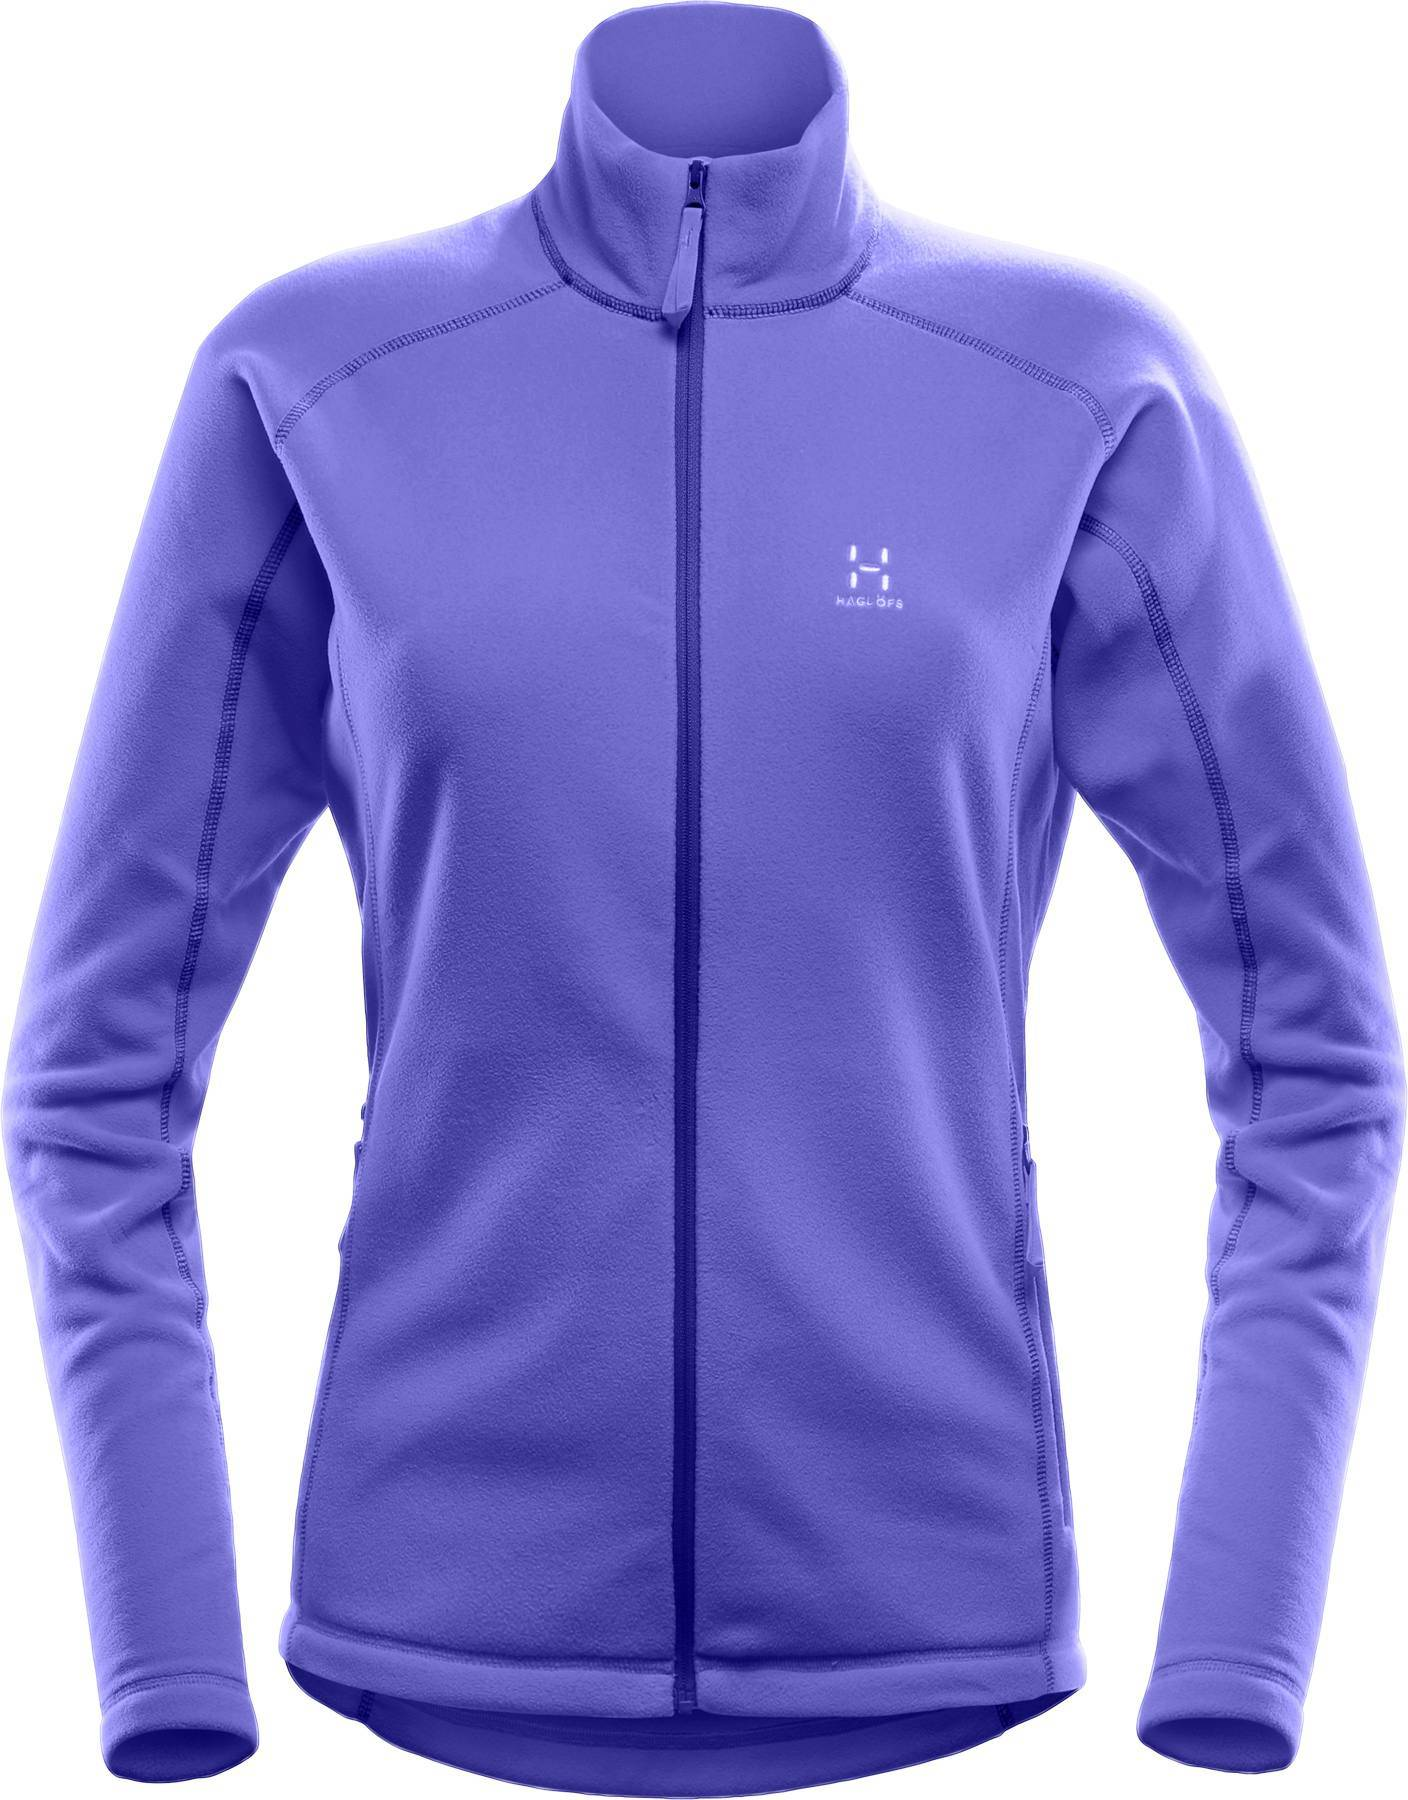 Haglöfs Astro II Jacket Women Purple L